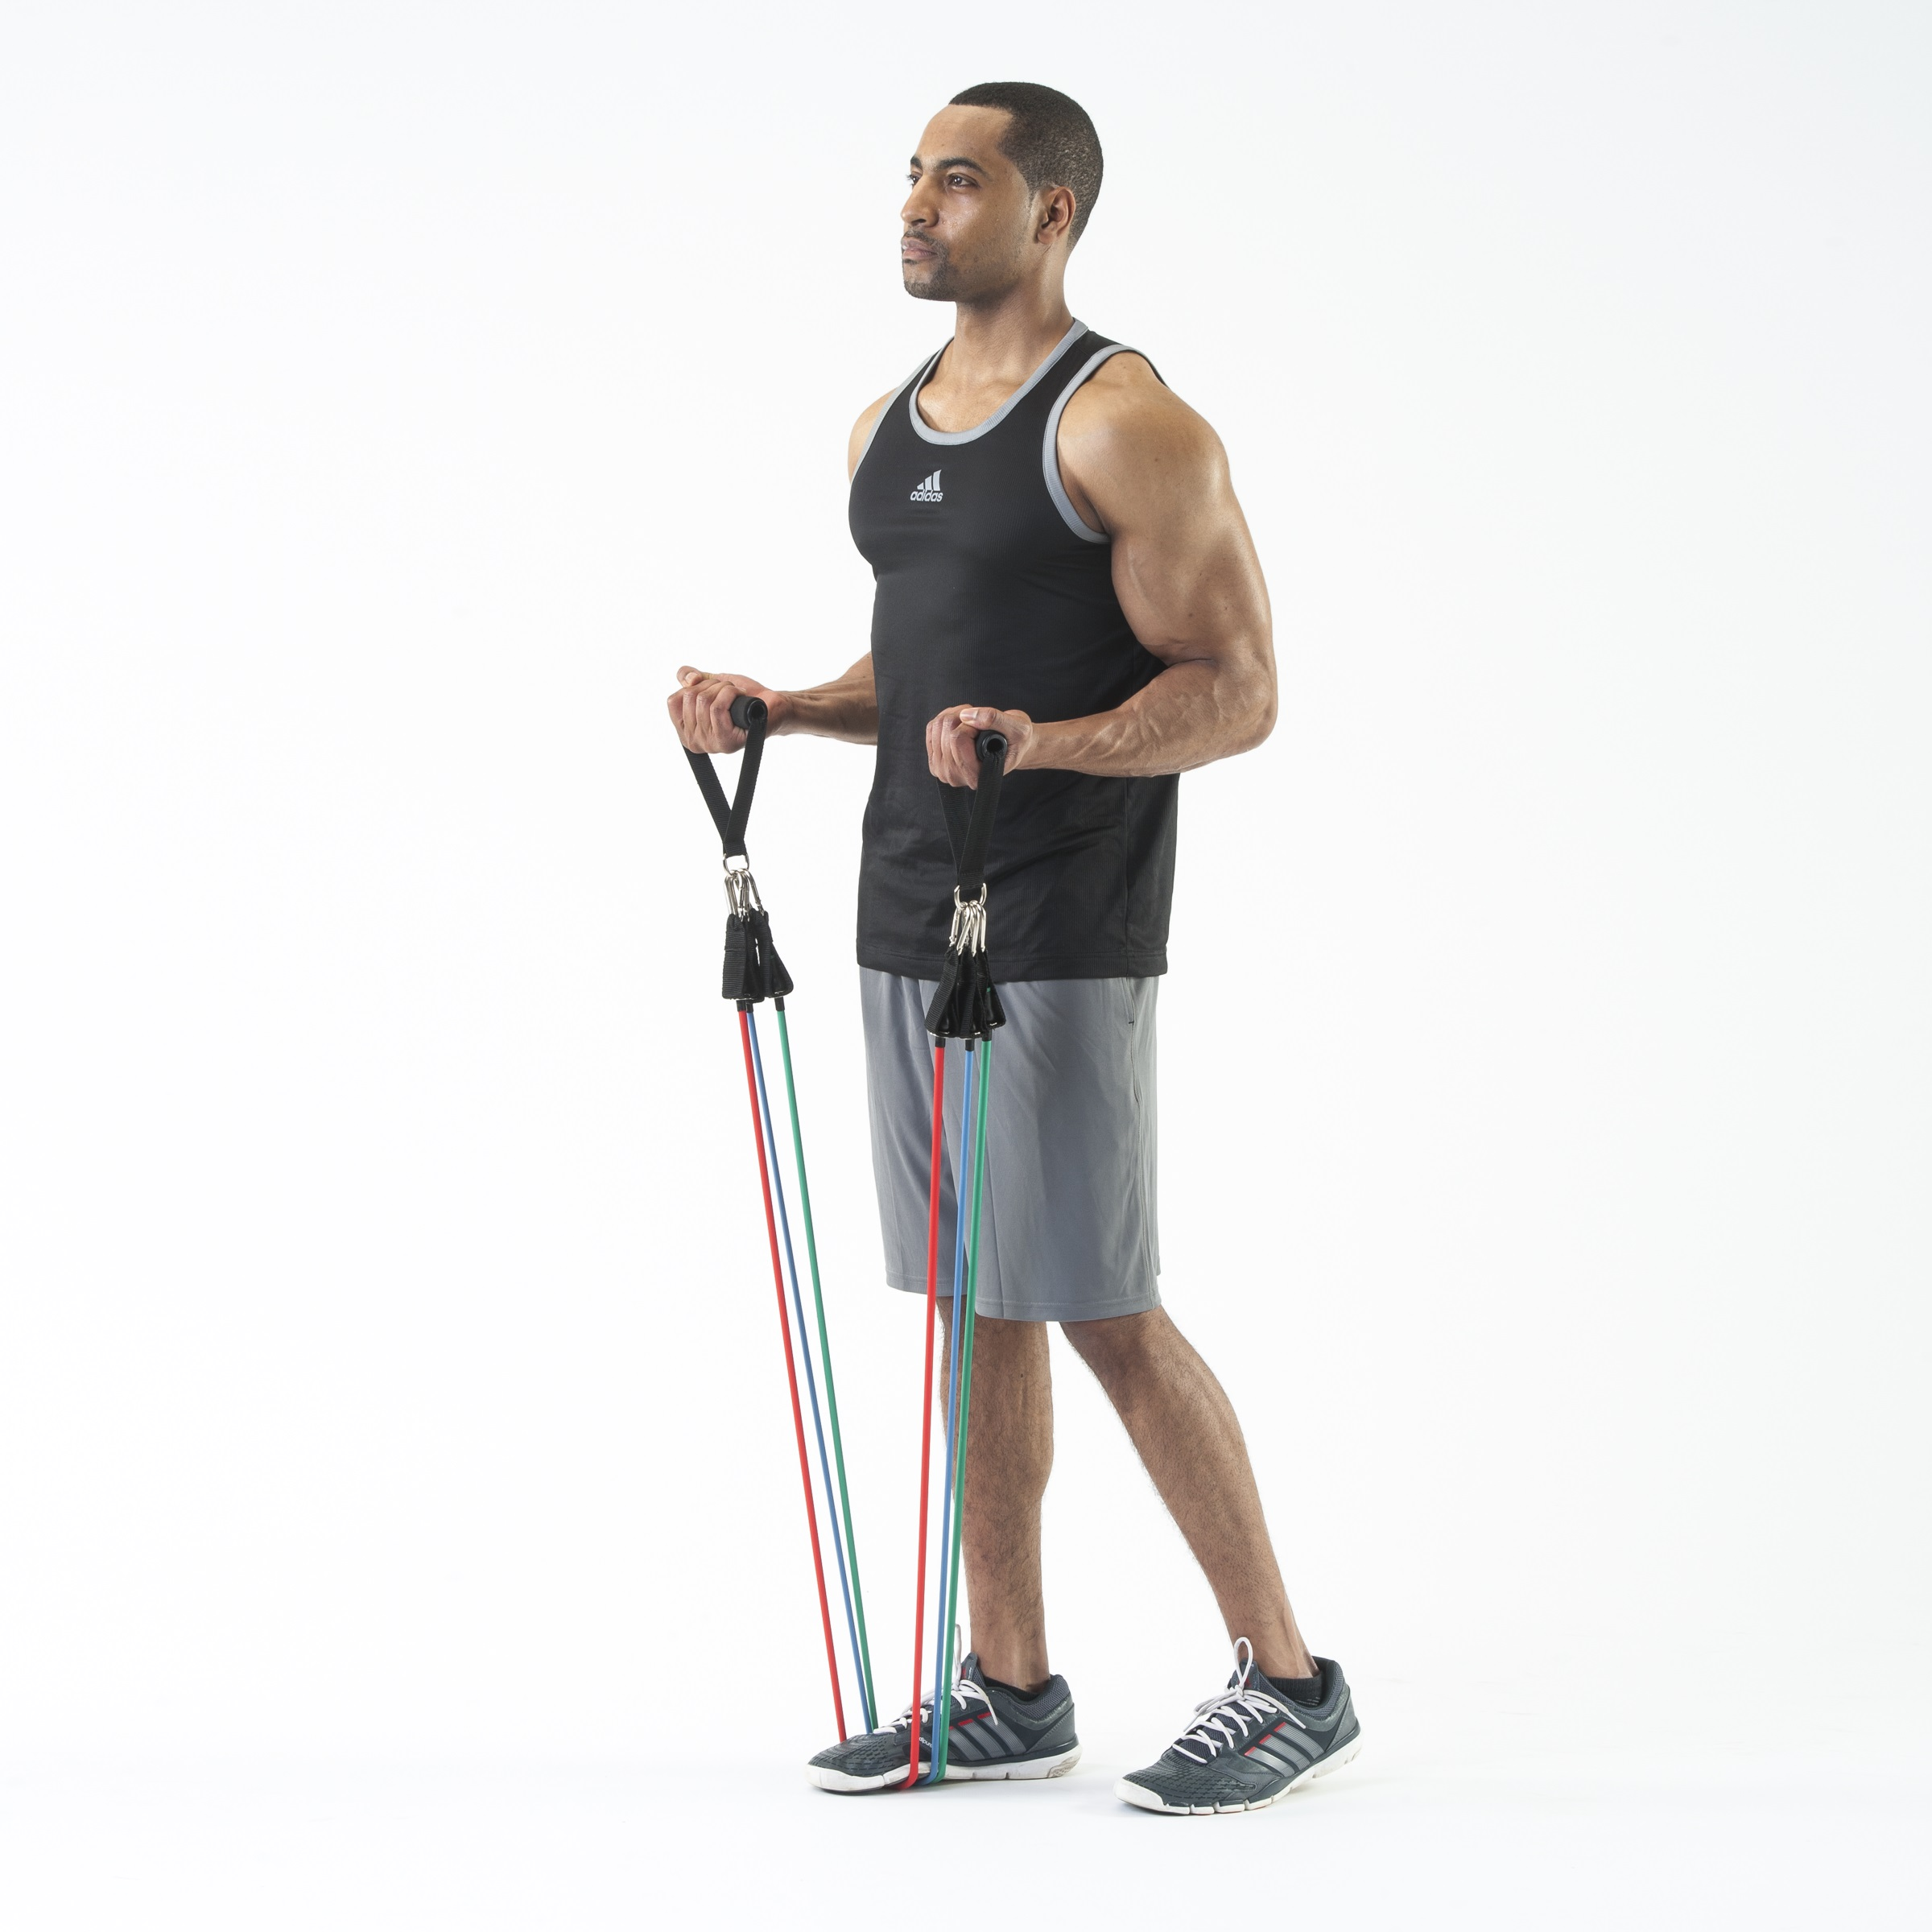 Resistance Band Set with Door Anchor, Ankle Strap, Exercise Chart, Carrying Case